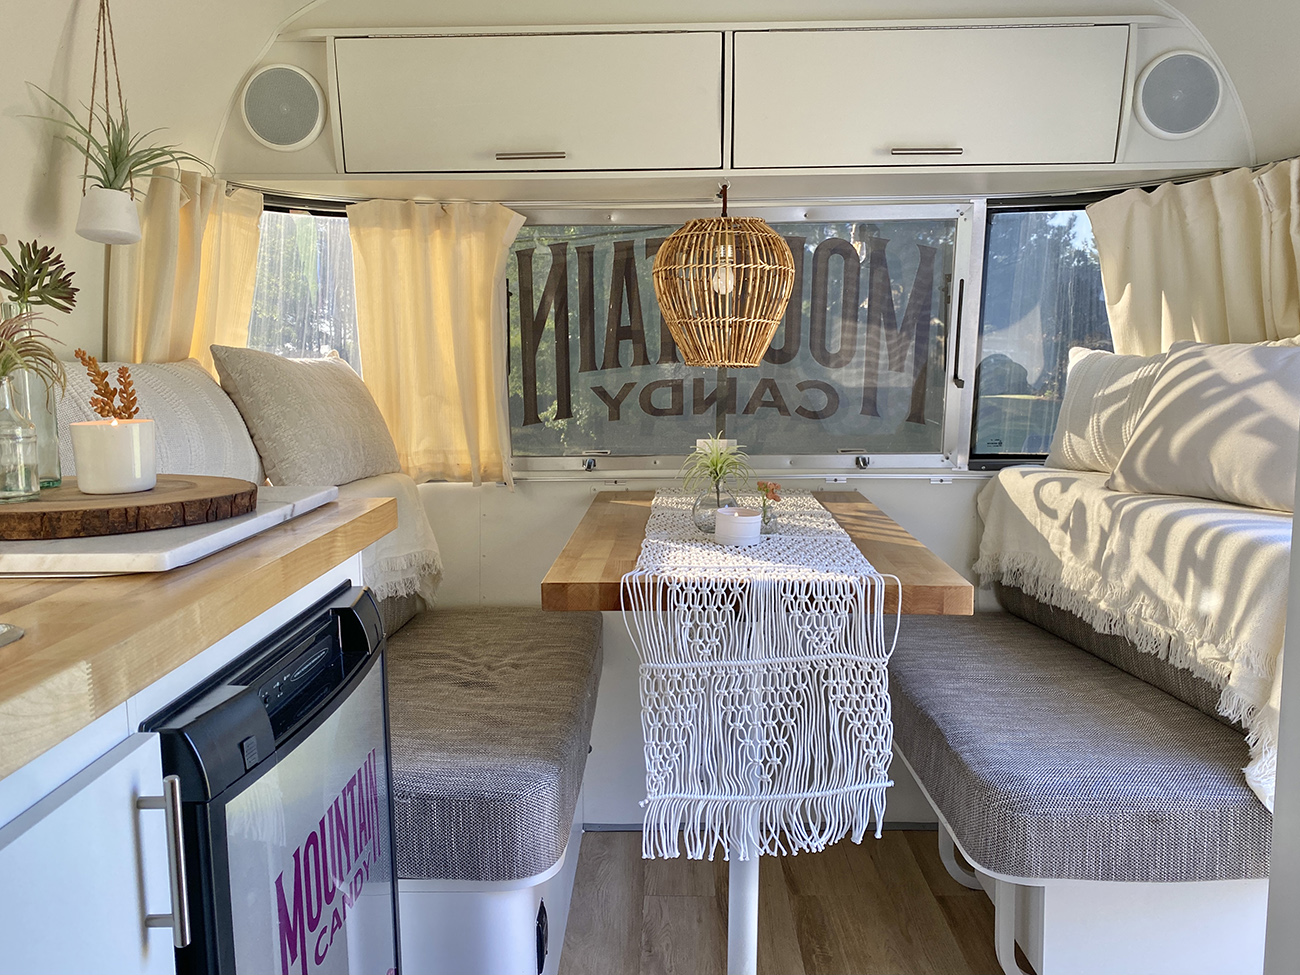 First look: See inside this Airstream built for beer lovers — and enter to win it